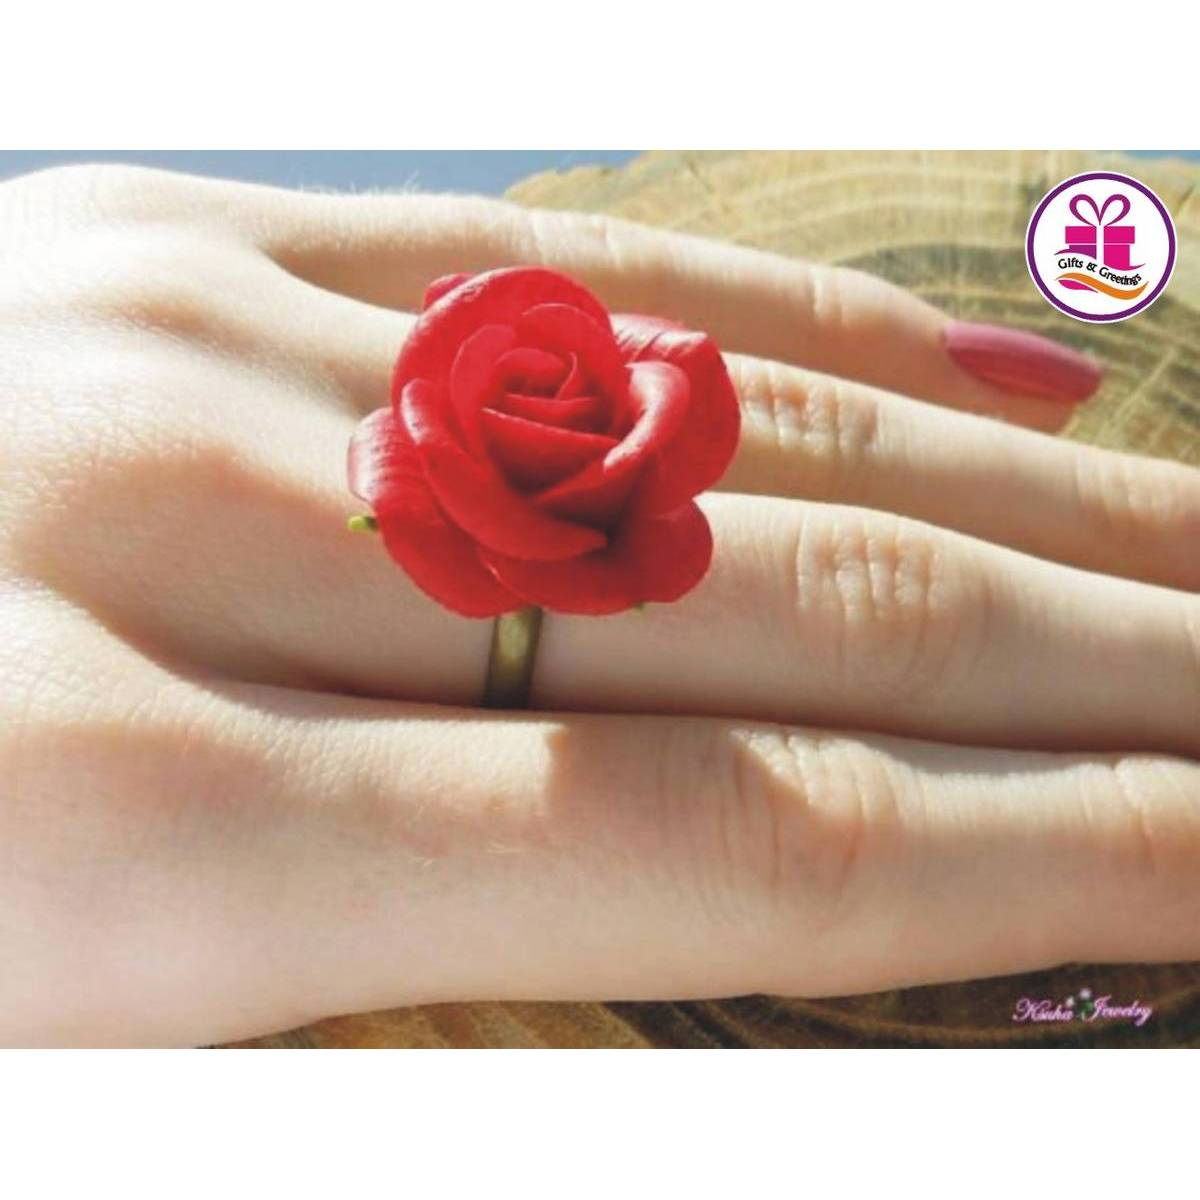 NEW STYLE Red Rose Ring, Red Flower Ring with Free Ring Box, Adjustable size ring, Gift for anniversary, birthday, engagement, valentine, eid etc / Gifts & Greetings